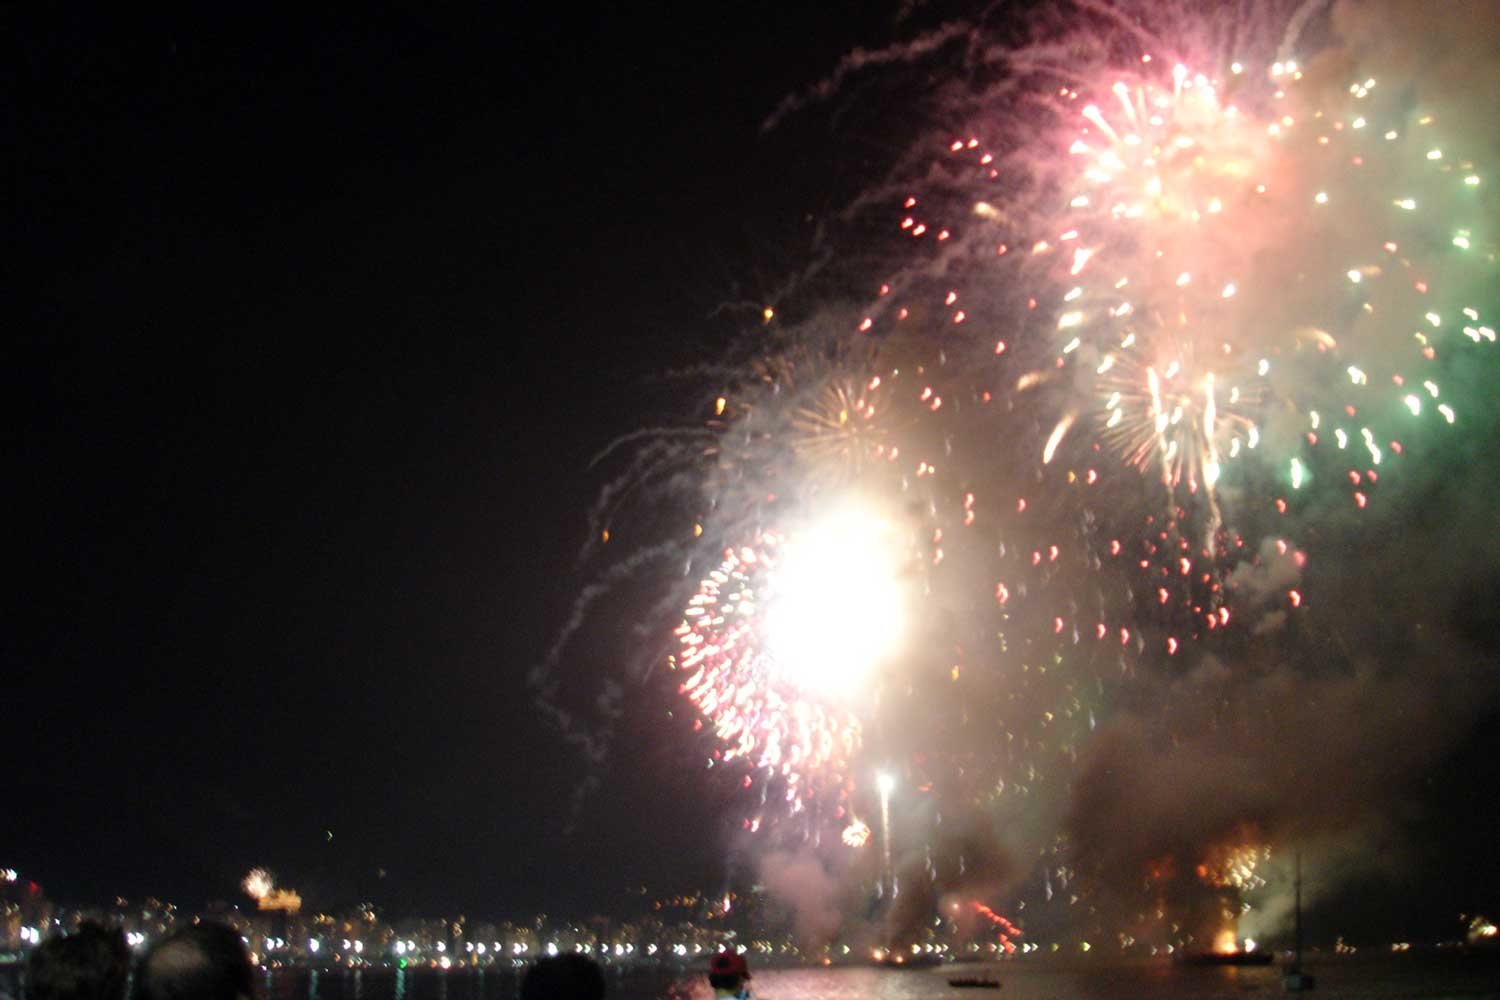 Brazilian New Year's Eve fireworks